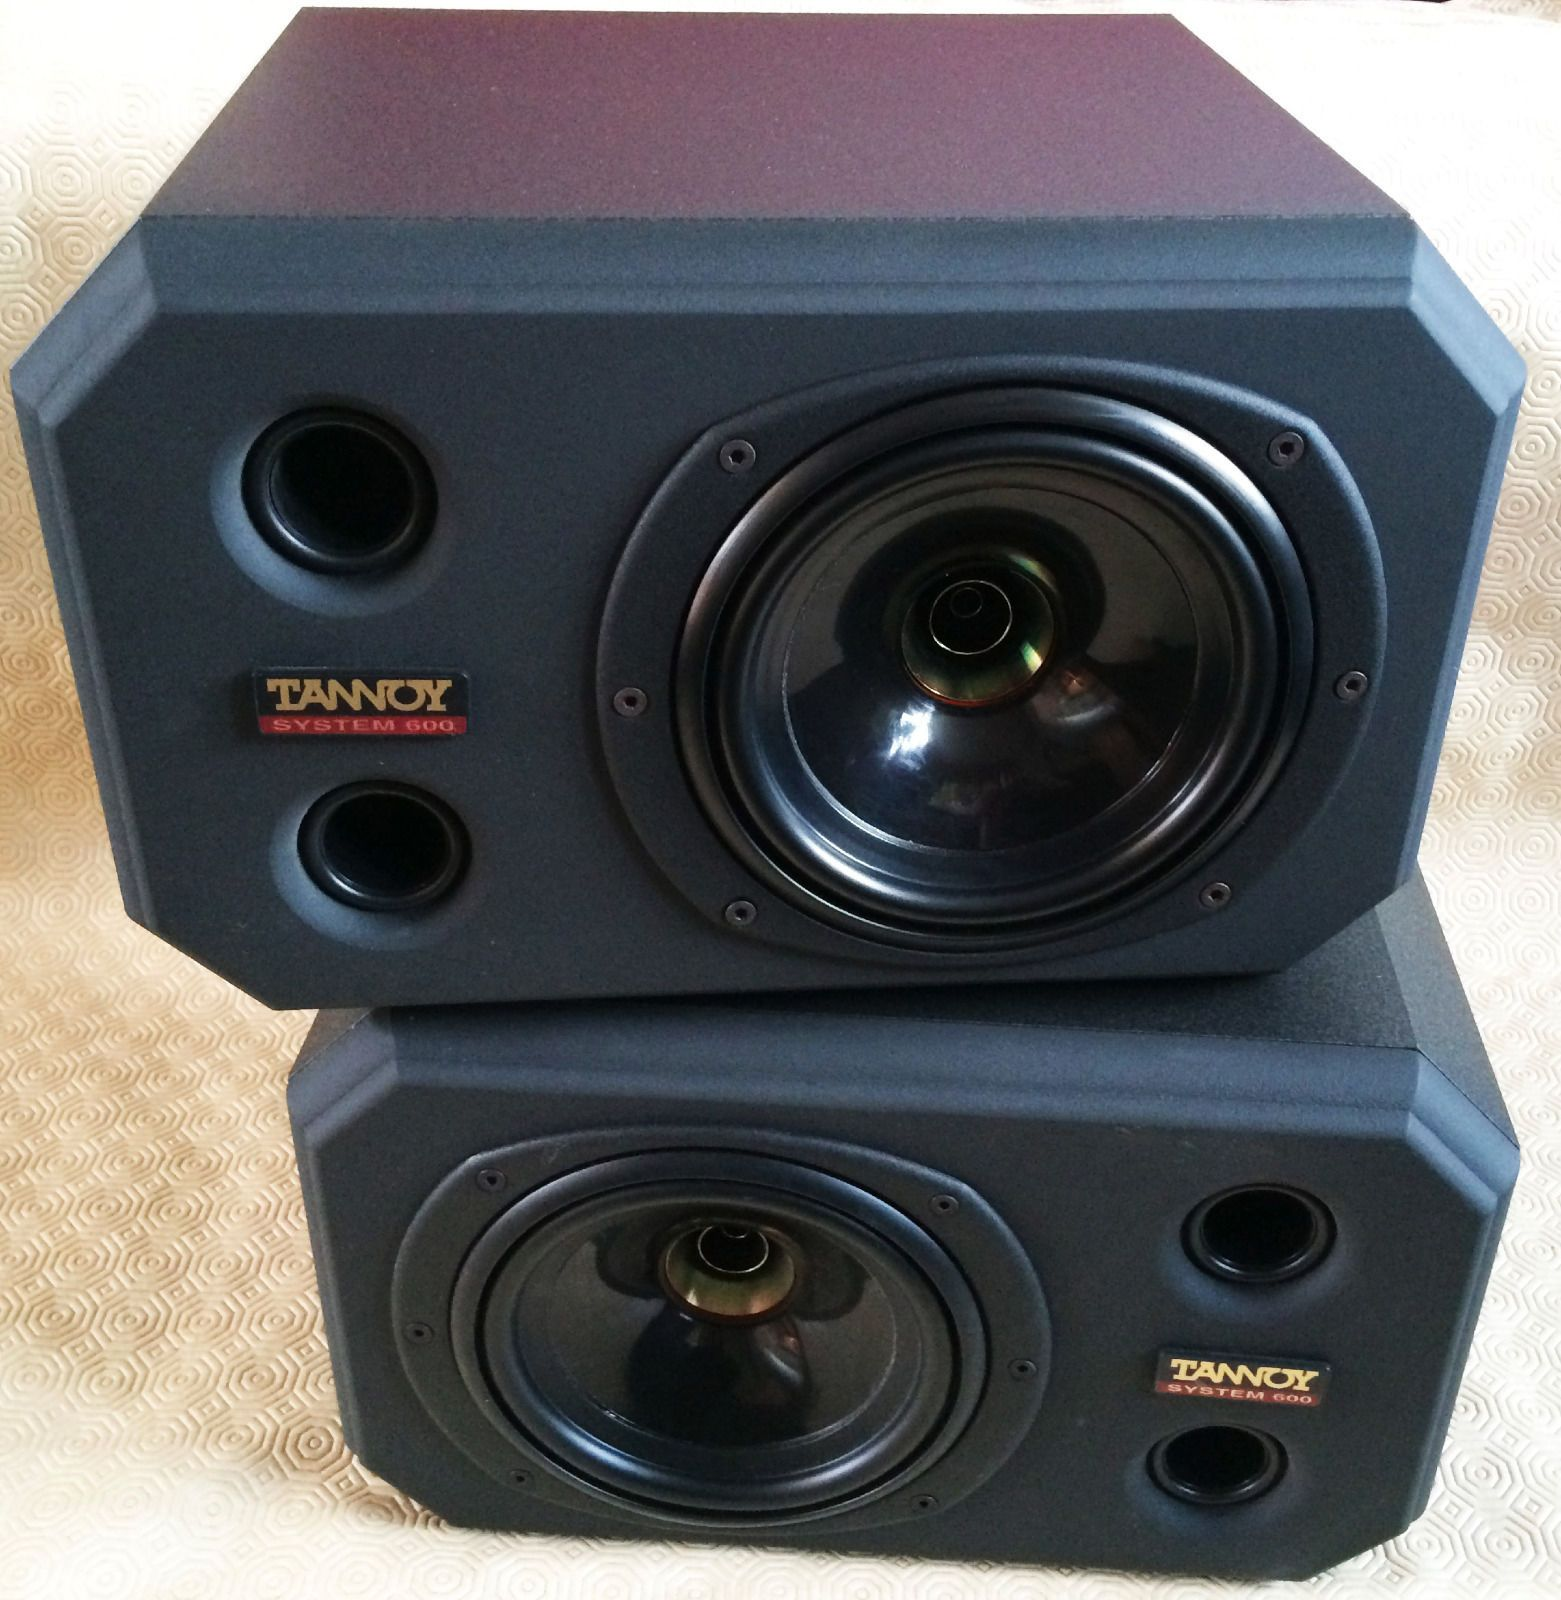 Tannoy System 600